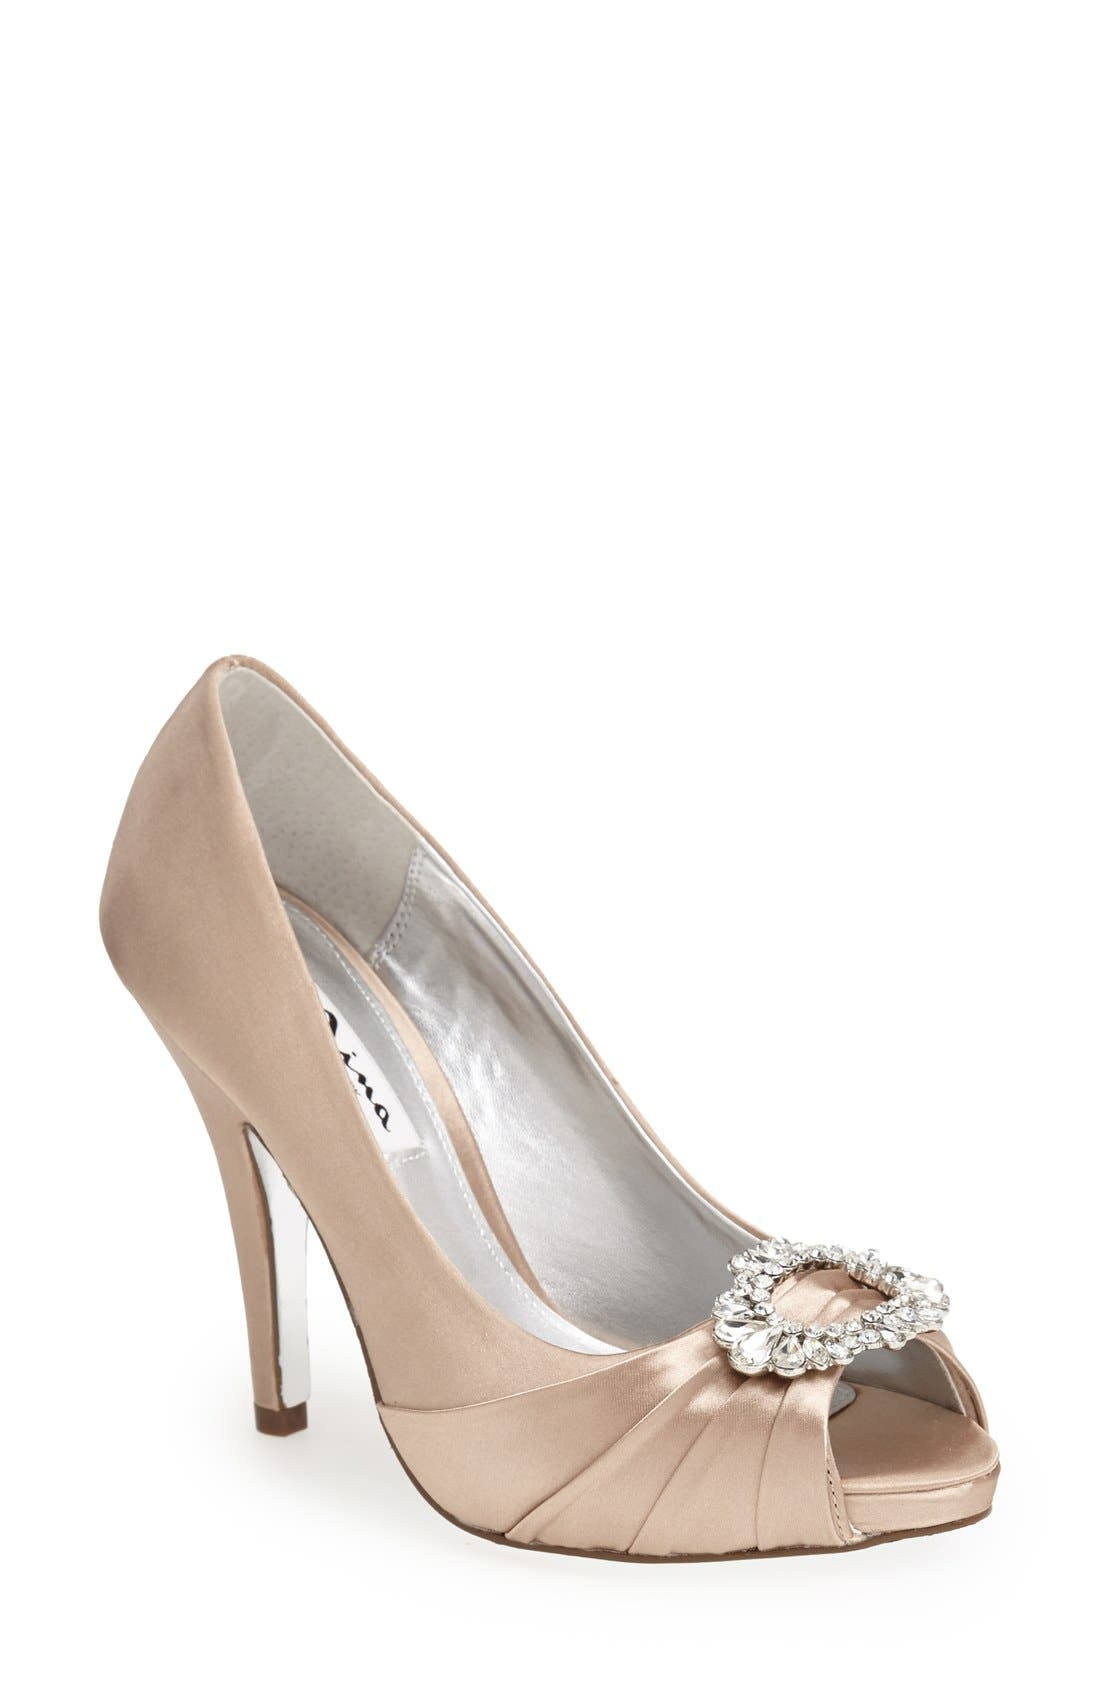 Main Image - Nina 'Elvira' Peep Toe Pump (Women)